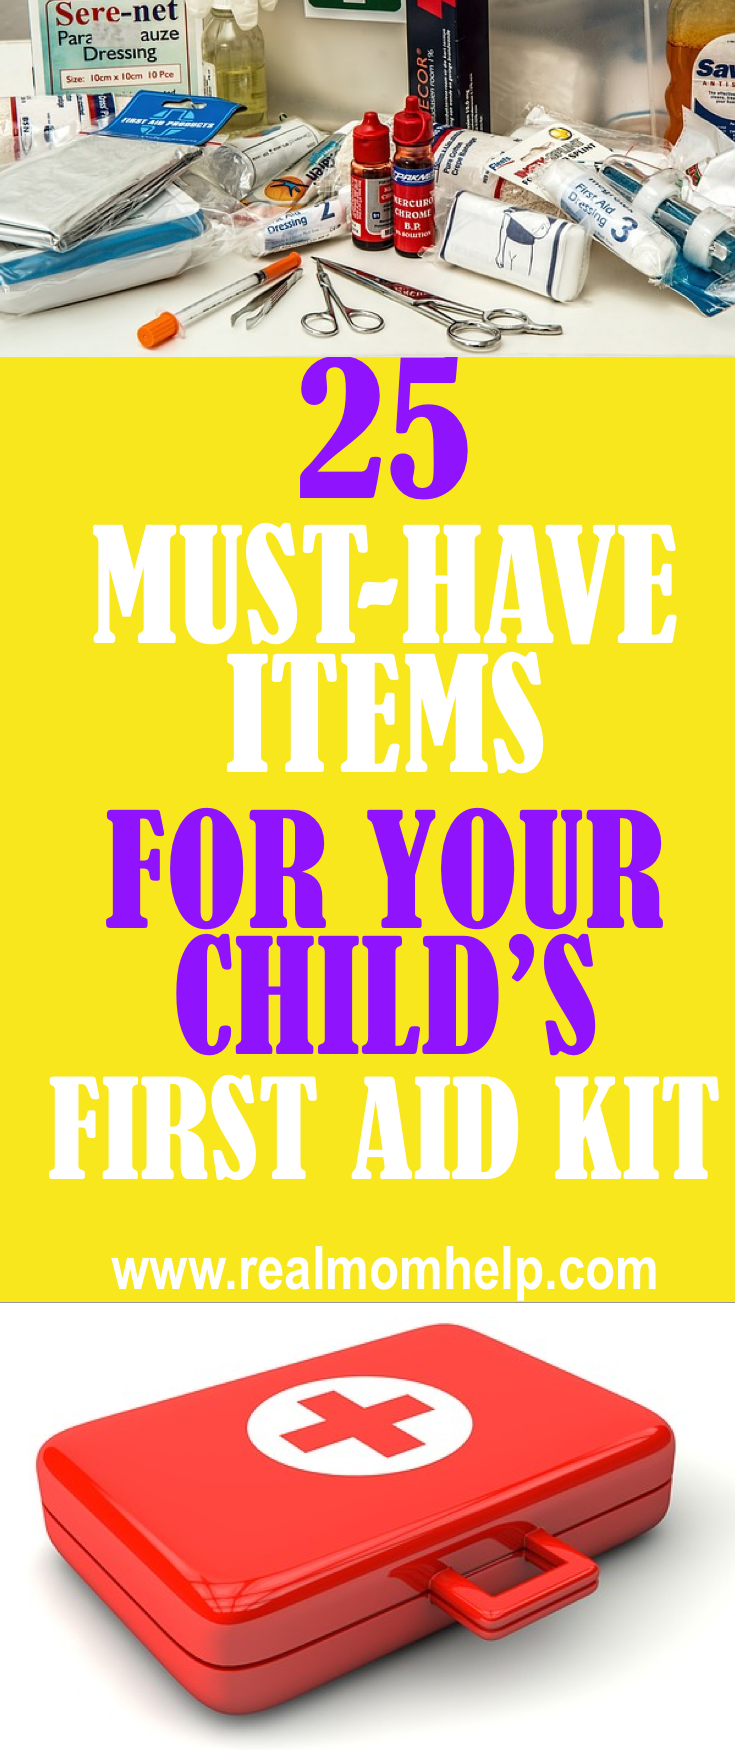 The Ultimate List Of First Aid Kit Supplies First aid